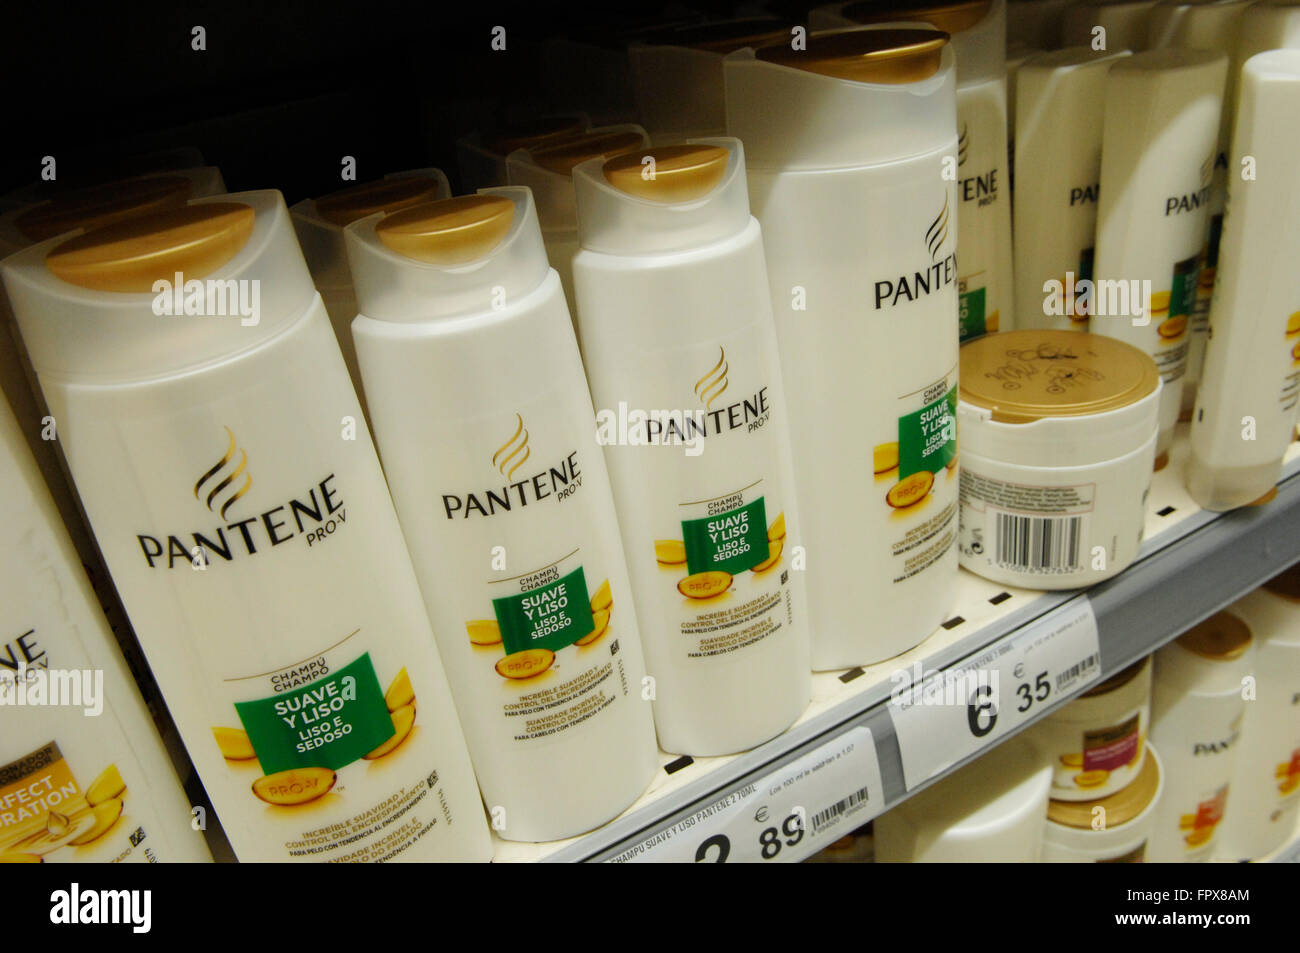 Pantene Pro-V Daily Moisture Renewal 2 in 1 Shampoo & Conditioner, 12.6 fl oz, on sale in a Carrefour Supermarket. - Stock Image